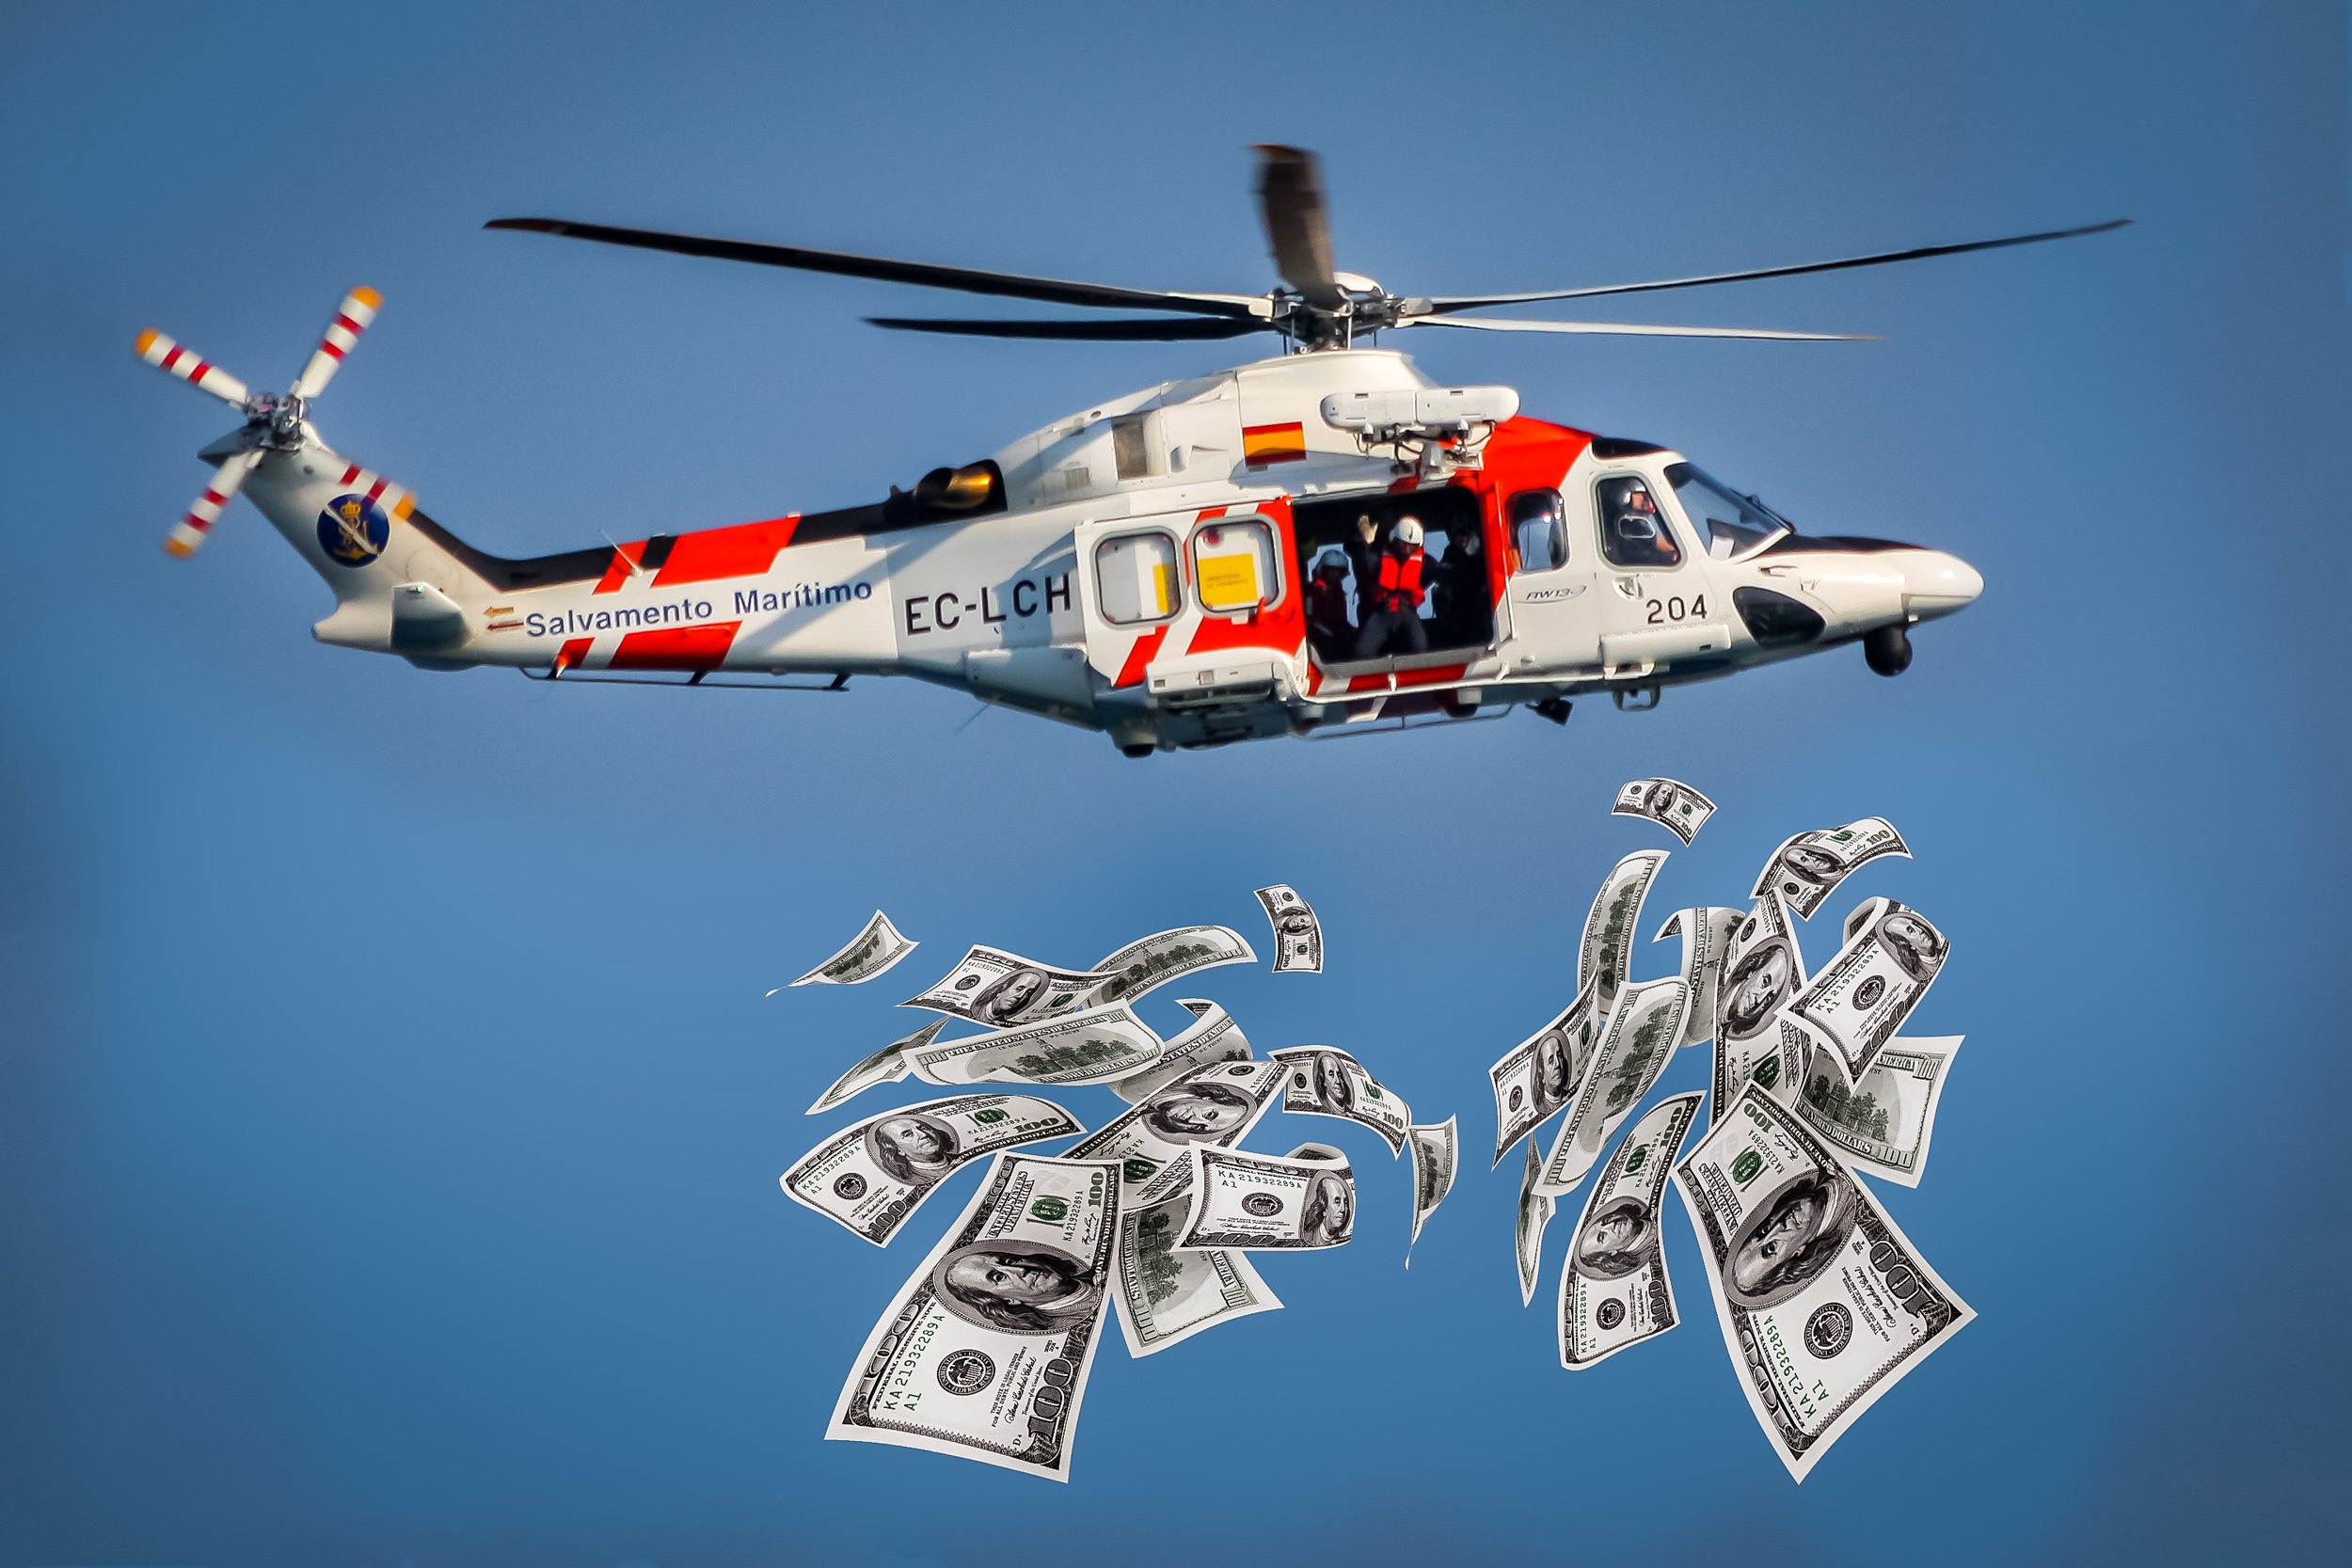 Helicopter Money. Image composed from photos by  Jordi Payà  and  401(K) 2012 . Licensed under CC BY-SA 2.0.